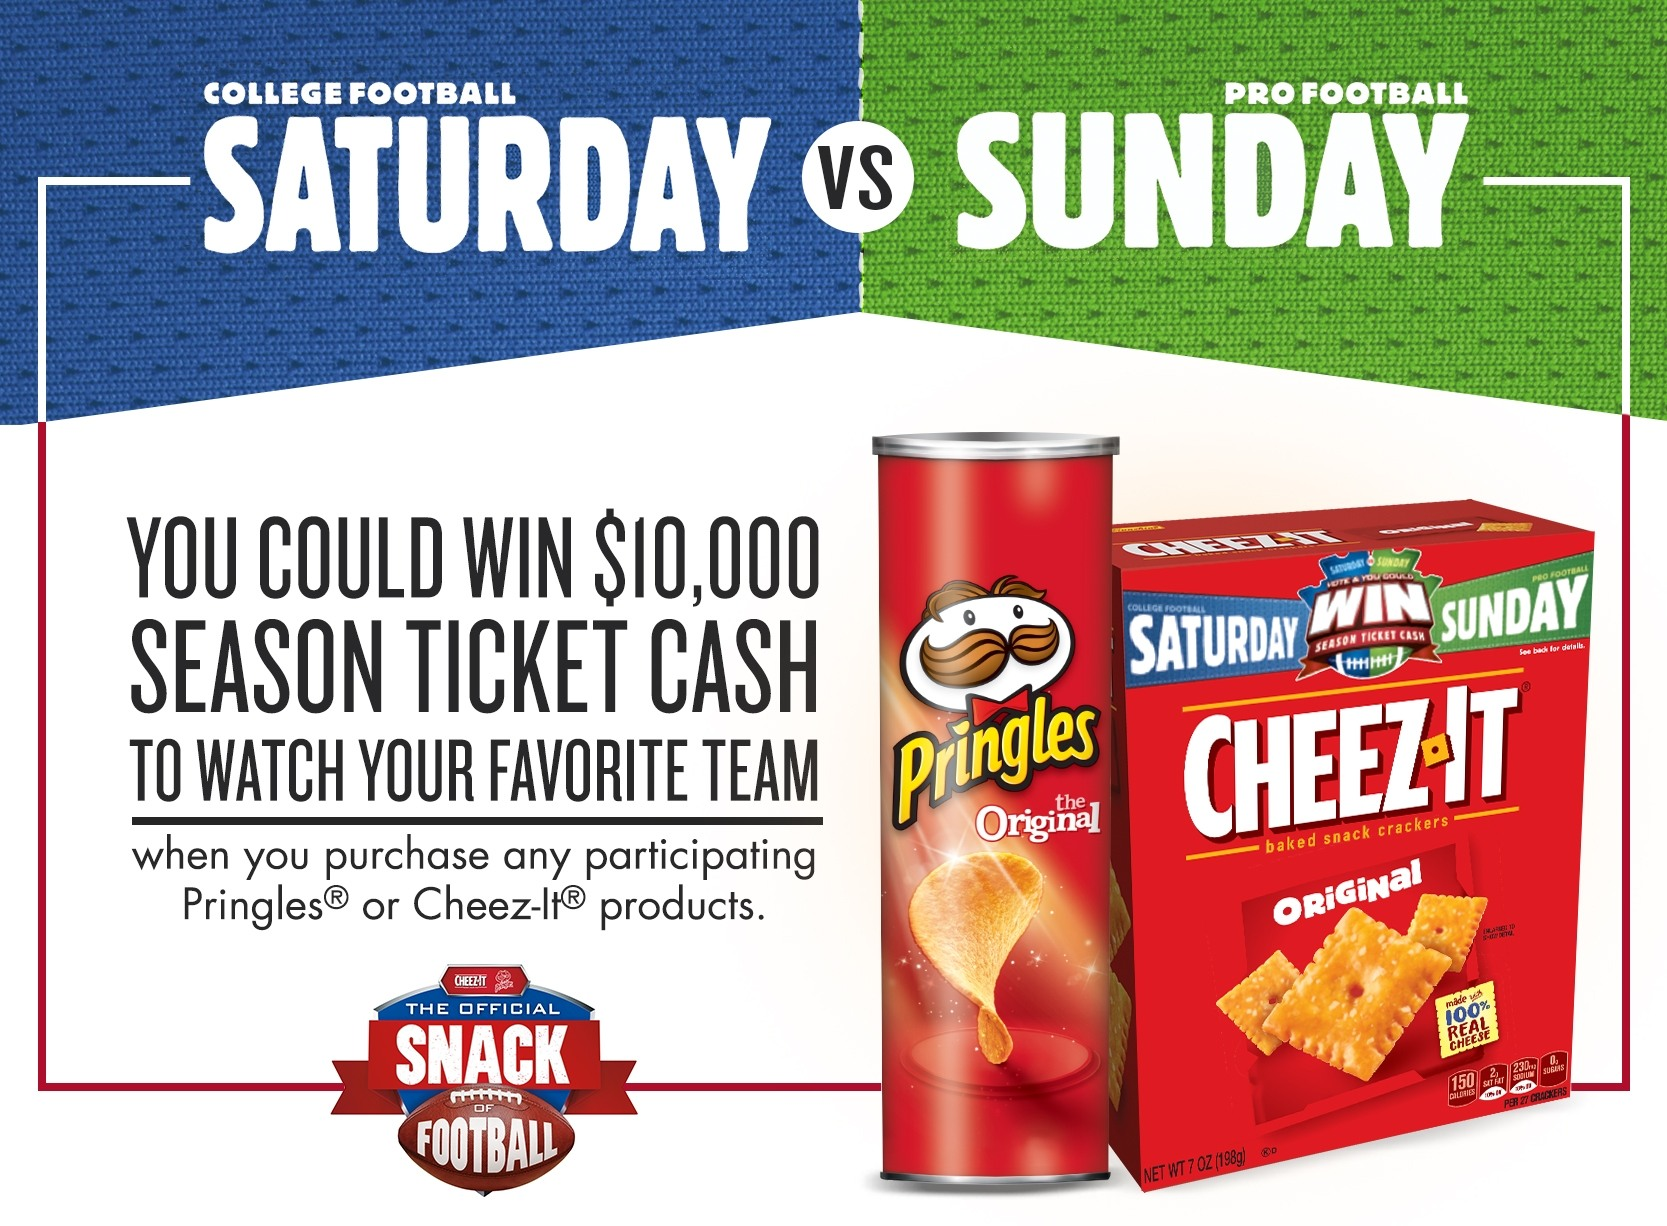 You could win $10,000 season ticket cash